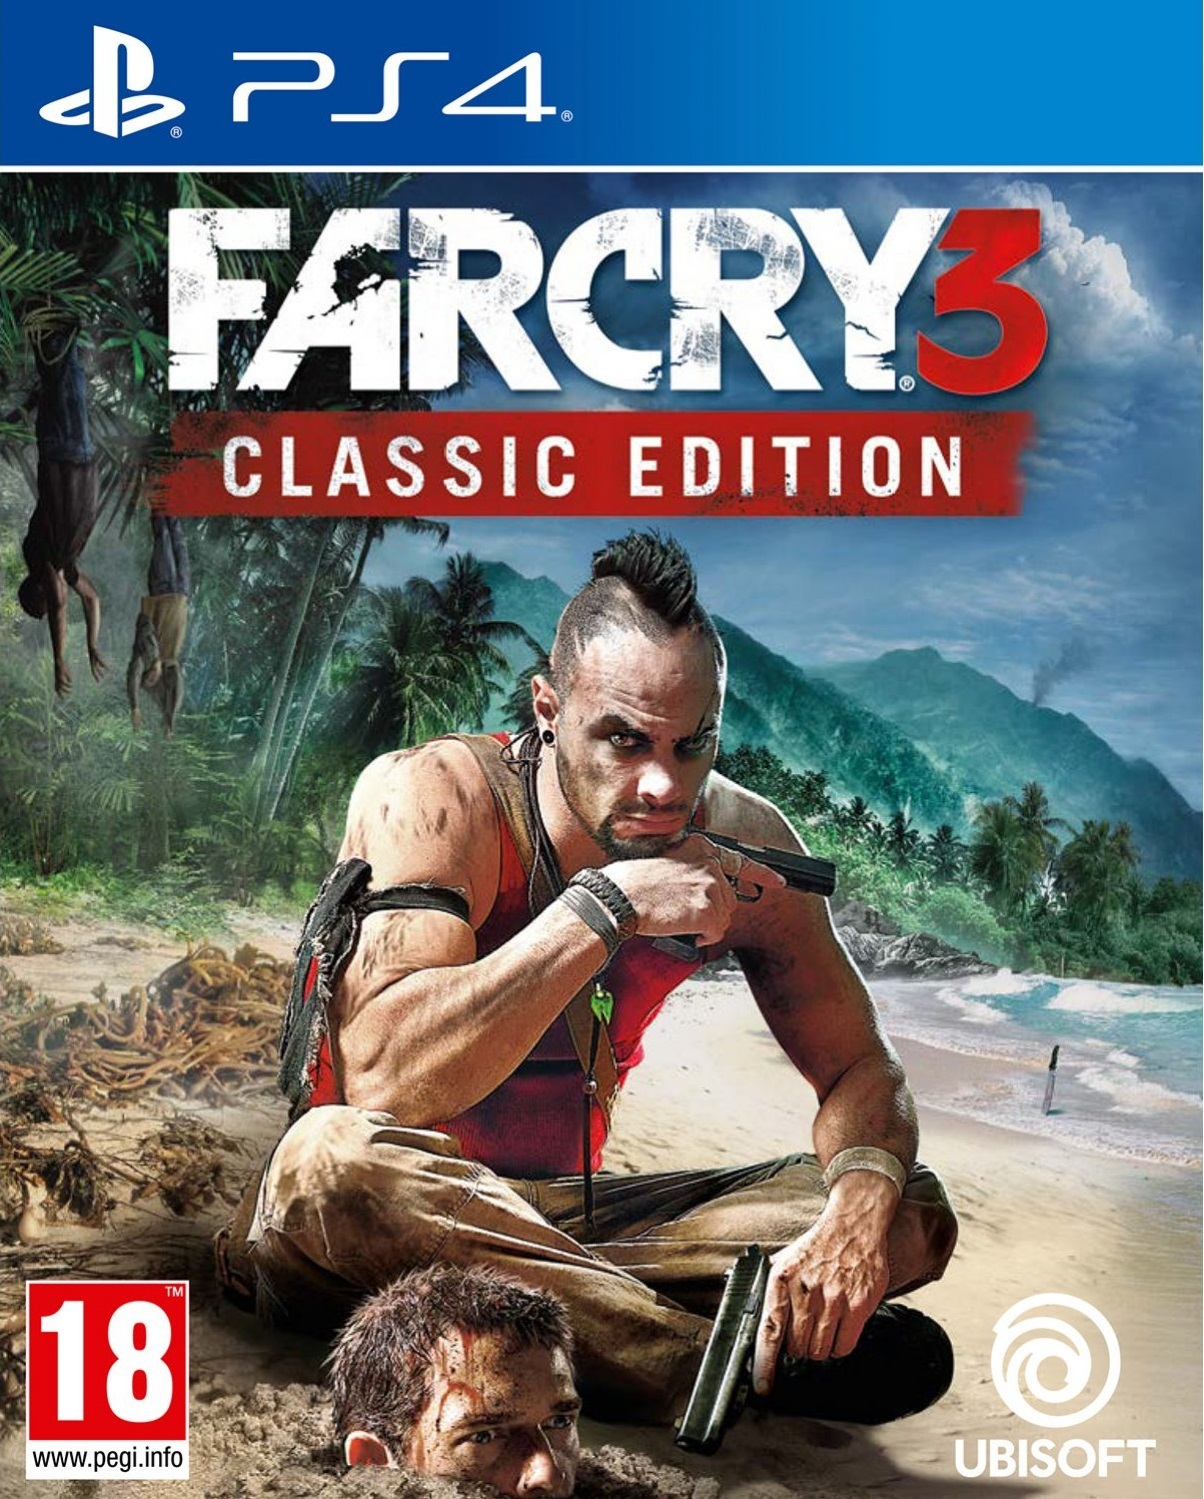 far-cry-3-classic-edition-chinese-english-subs-562491.1.jpg